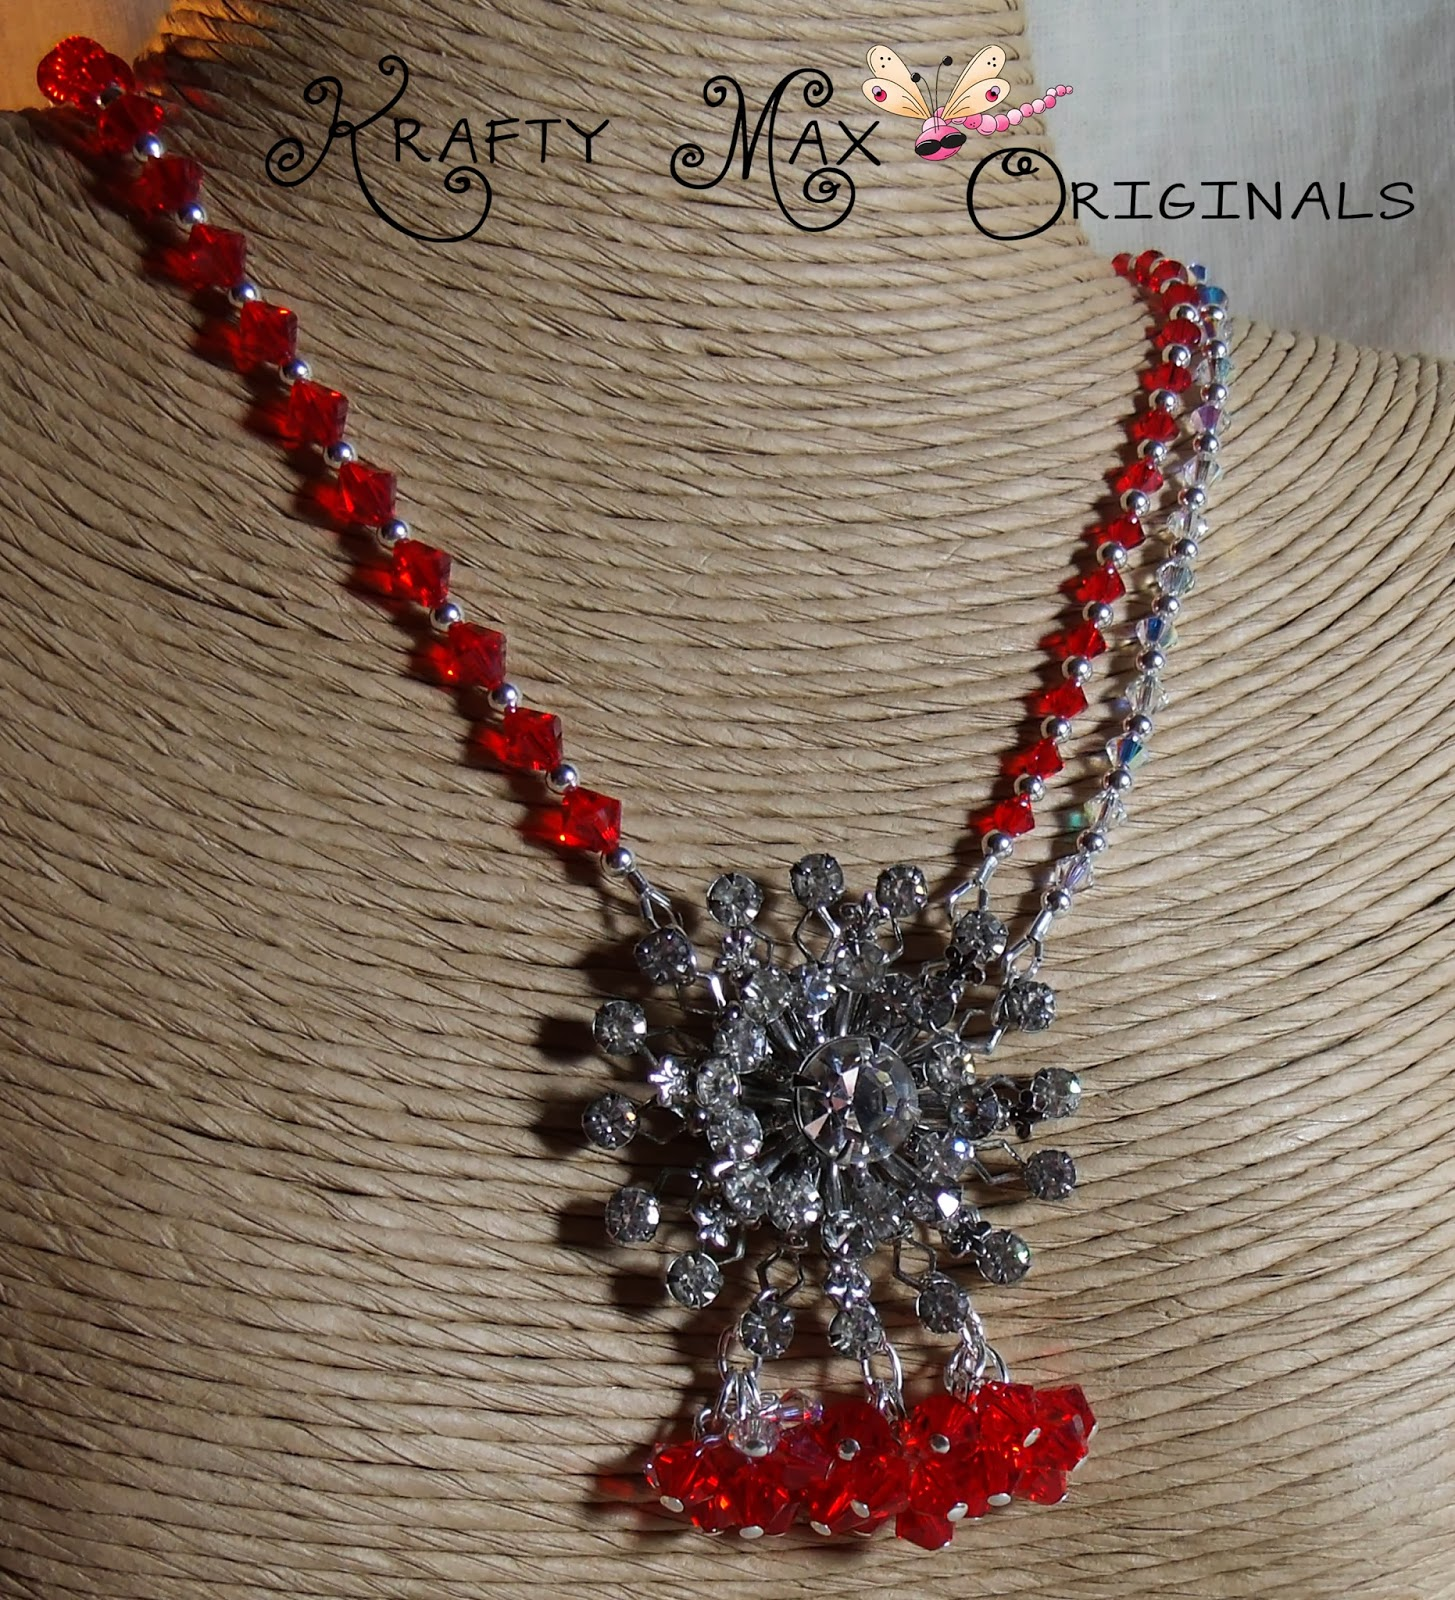 www.artfire.com/ext/shop/product_view/KraftyMax/4583522/Red_and_Swarovski_Crystal_StarBURST_Necklace_Set/Jewelry/Sets/Crystal